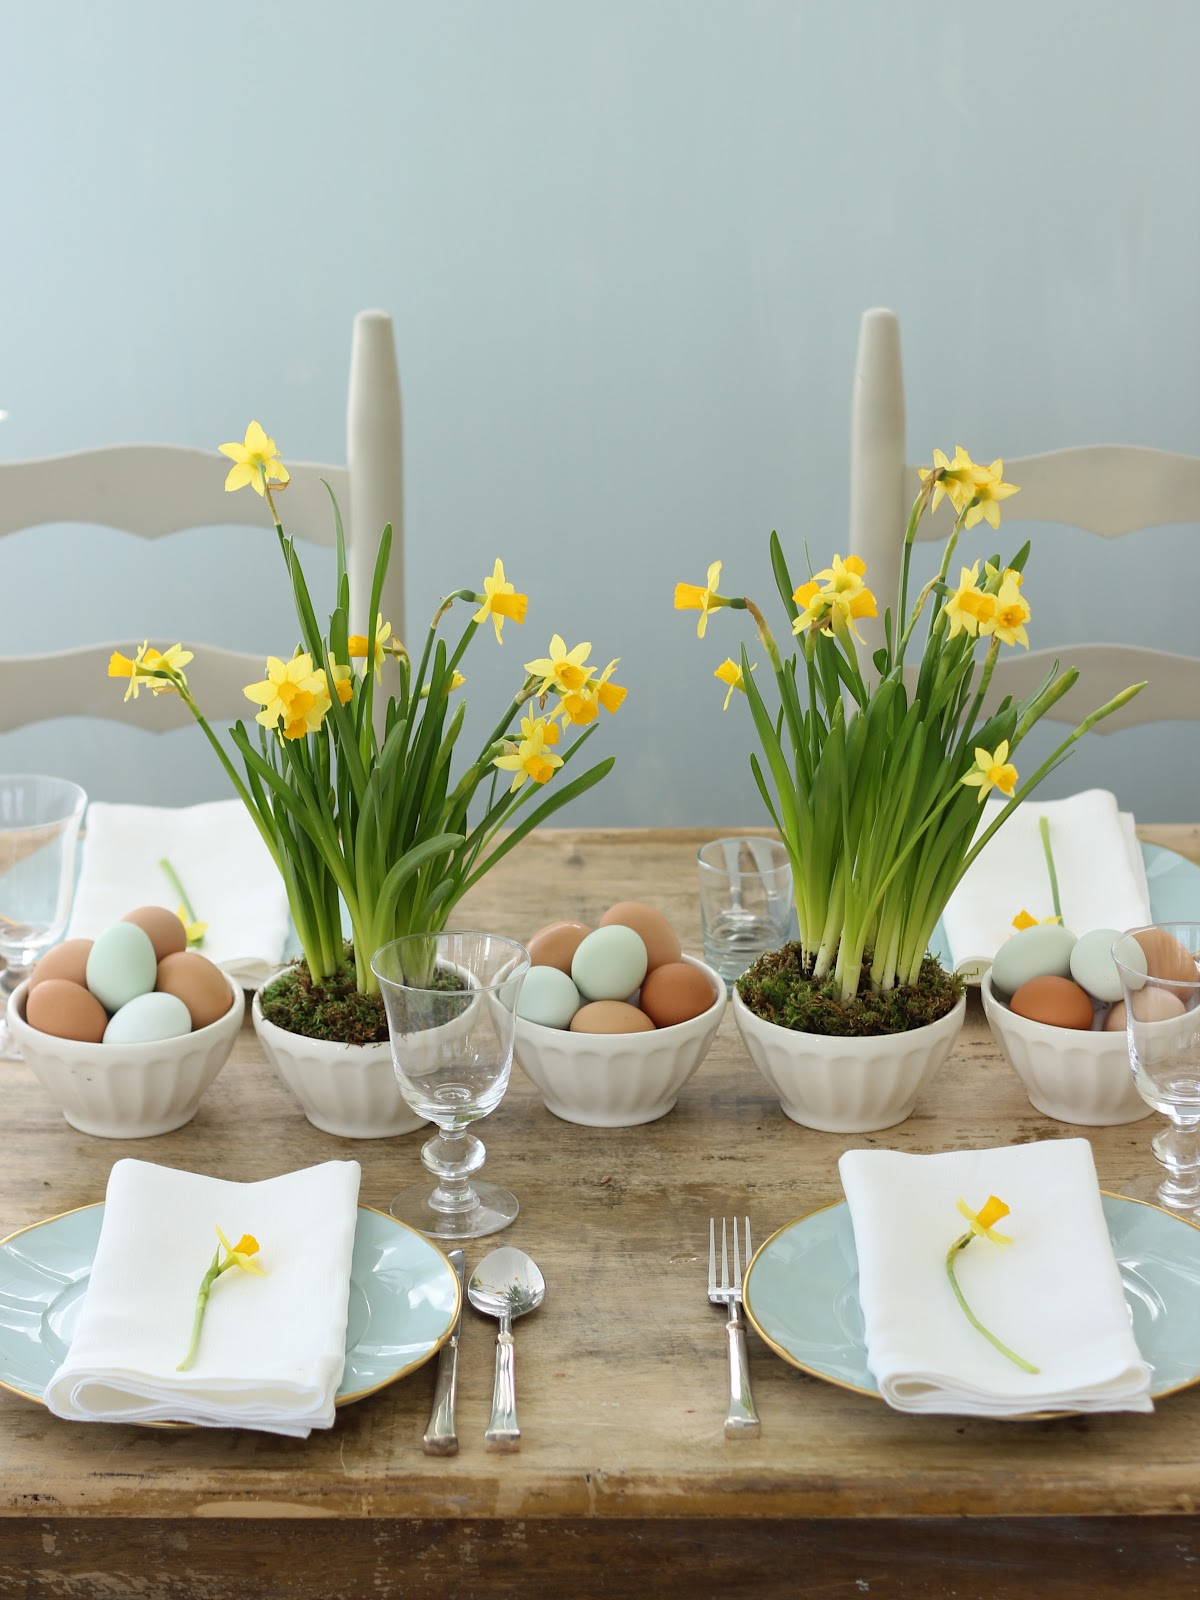 Jenny steffens hobick spring easter centerpieces yellow daffodils blue eggs - Table easter decorations ...